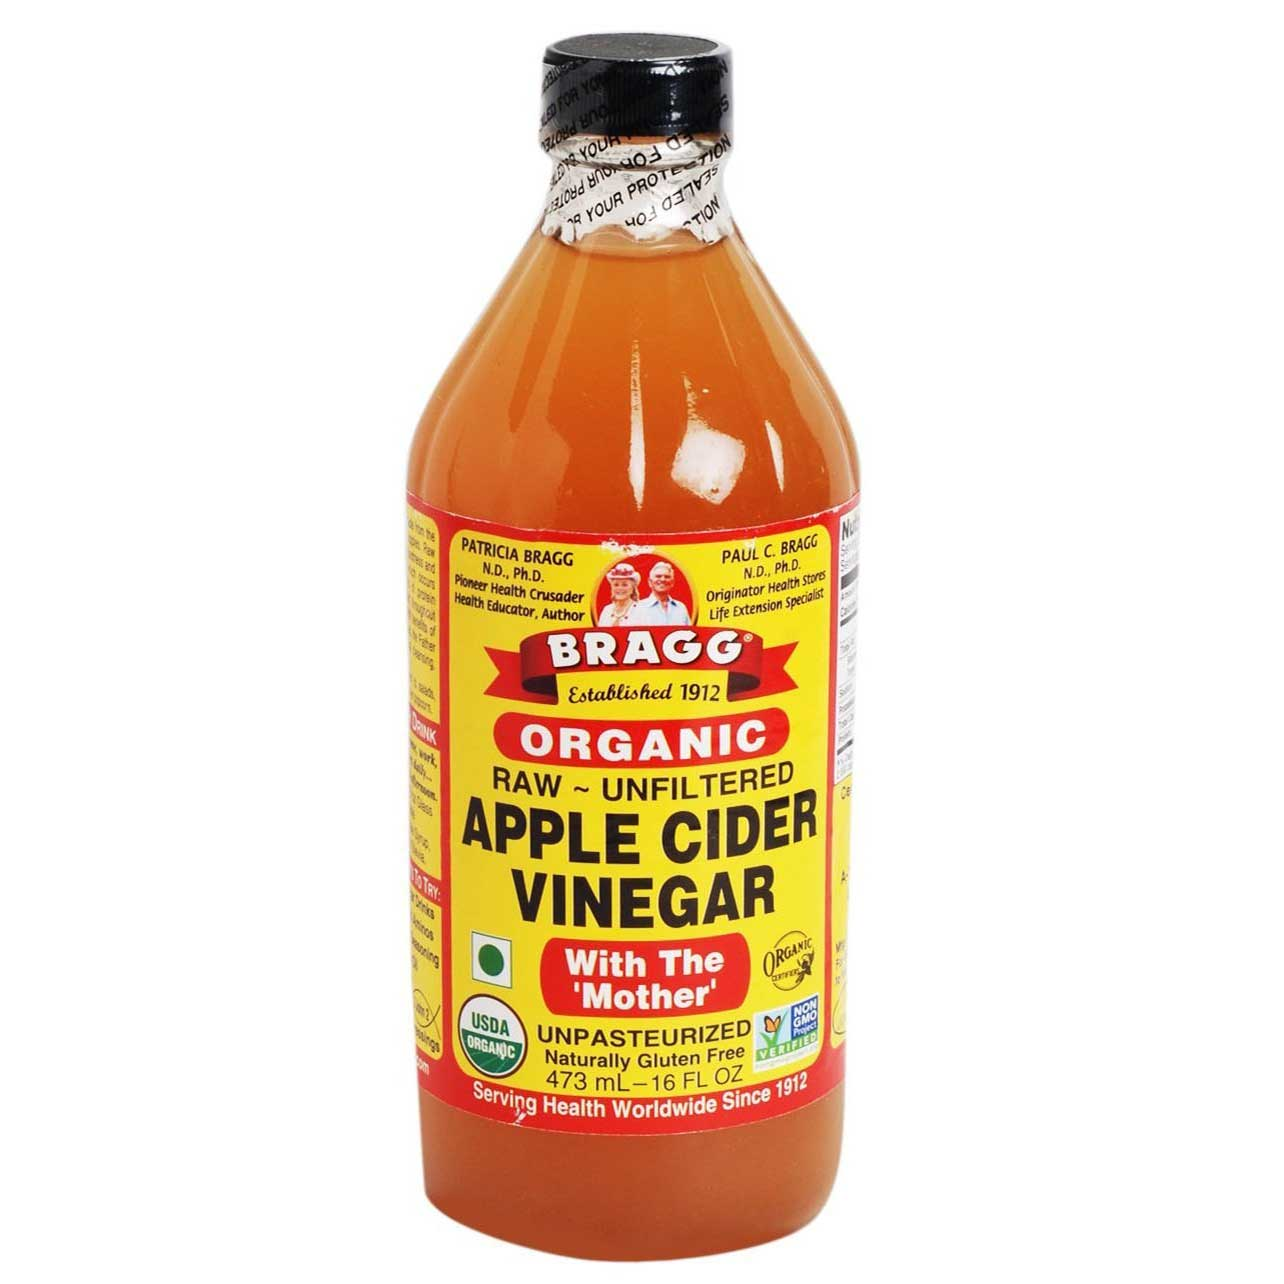 Bragg Apple Cider Vinegar, 16 oz(473 ml)